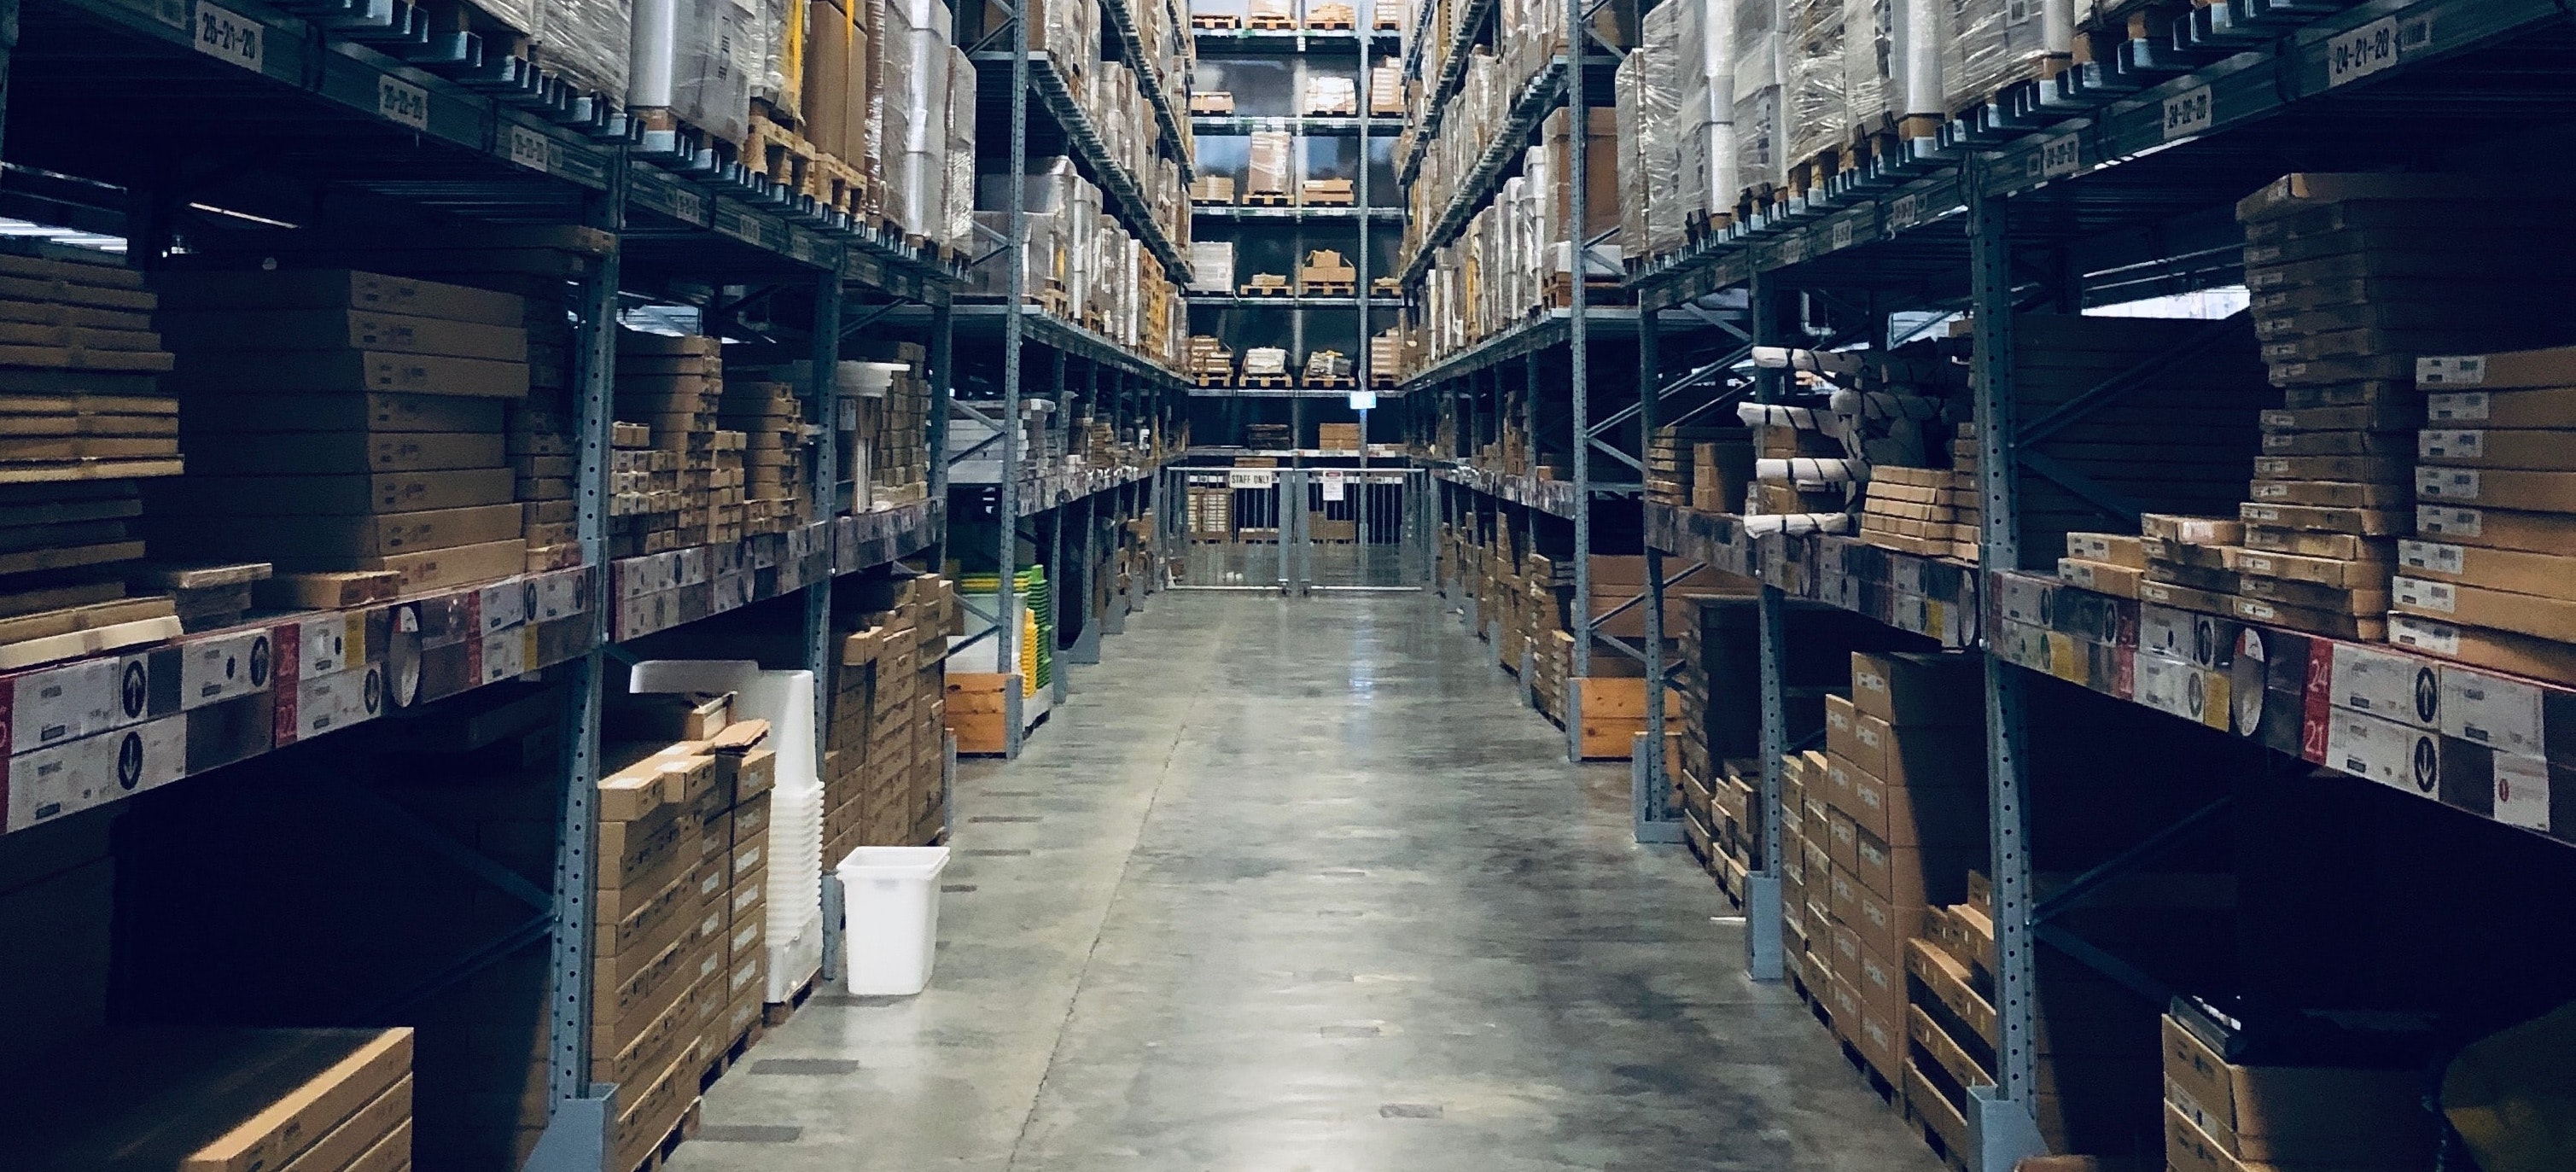 Going Beyond Purchase Order Management